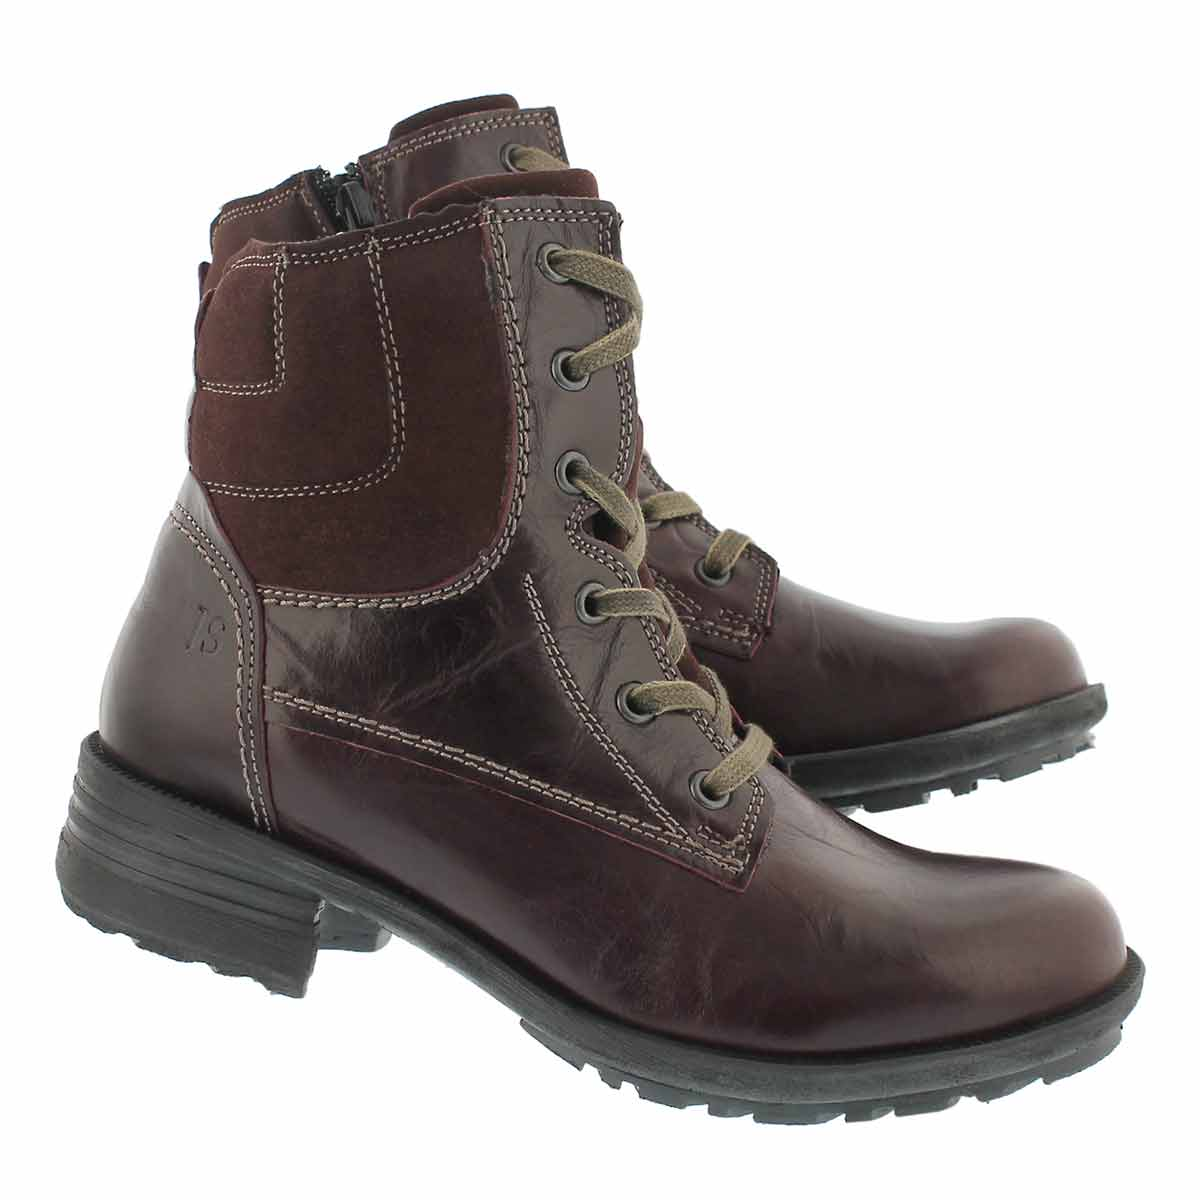 Lds Sandra 64 bordo lace up casual boot